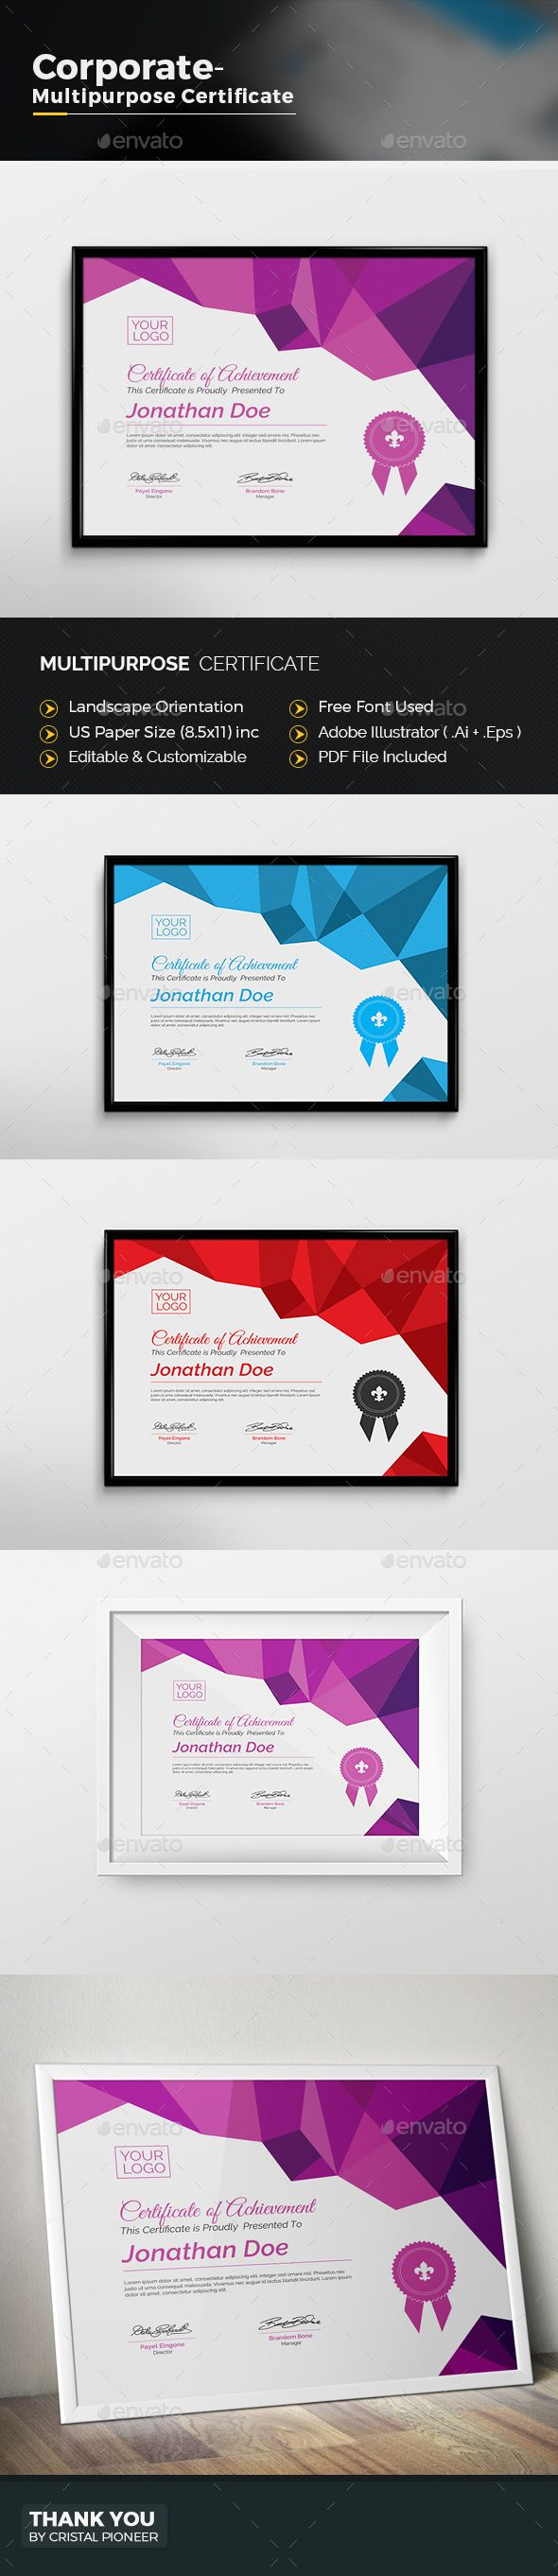 Multipurpose certificate multipurpose certificate design template certificate template vector eps vector ai download here yelopaper Gallery